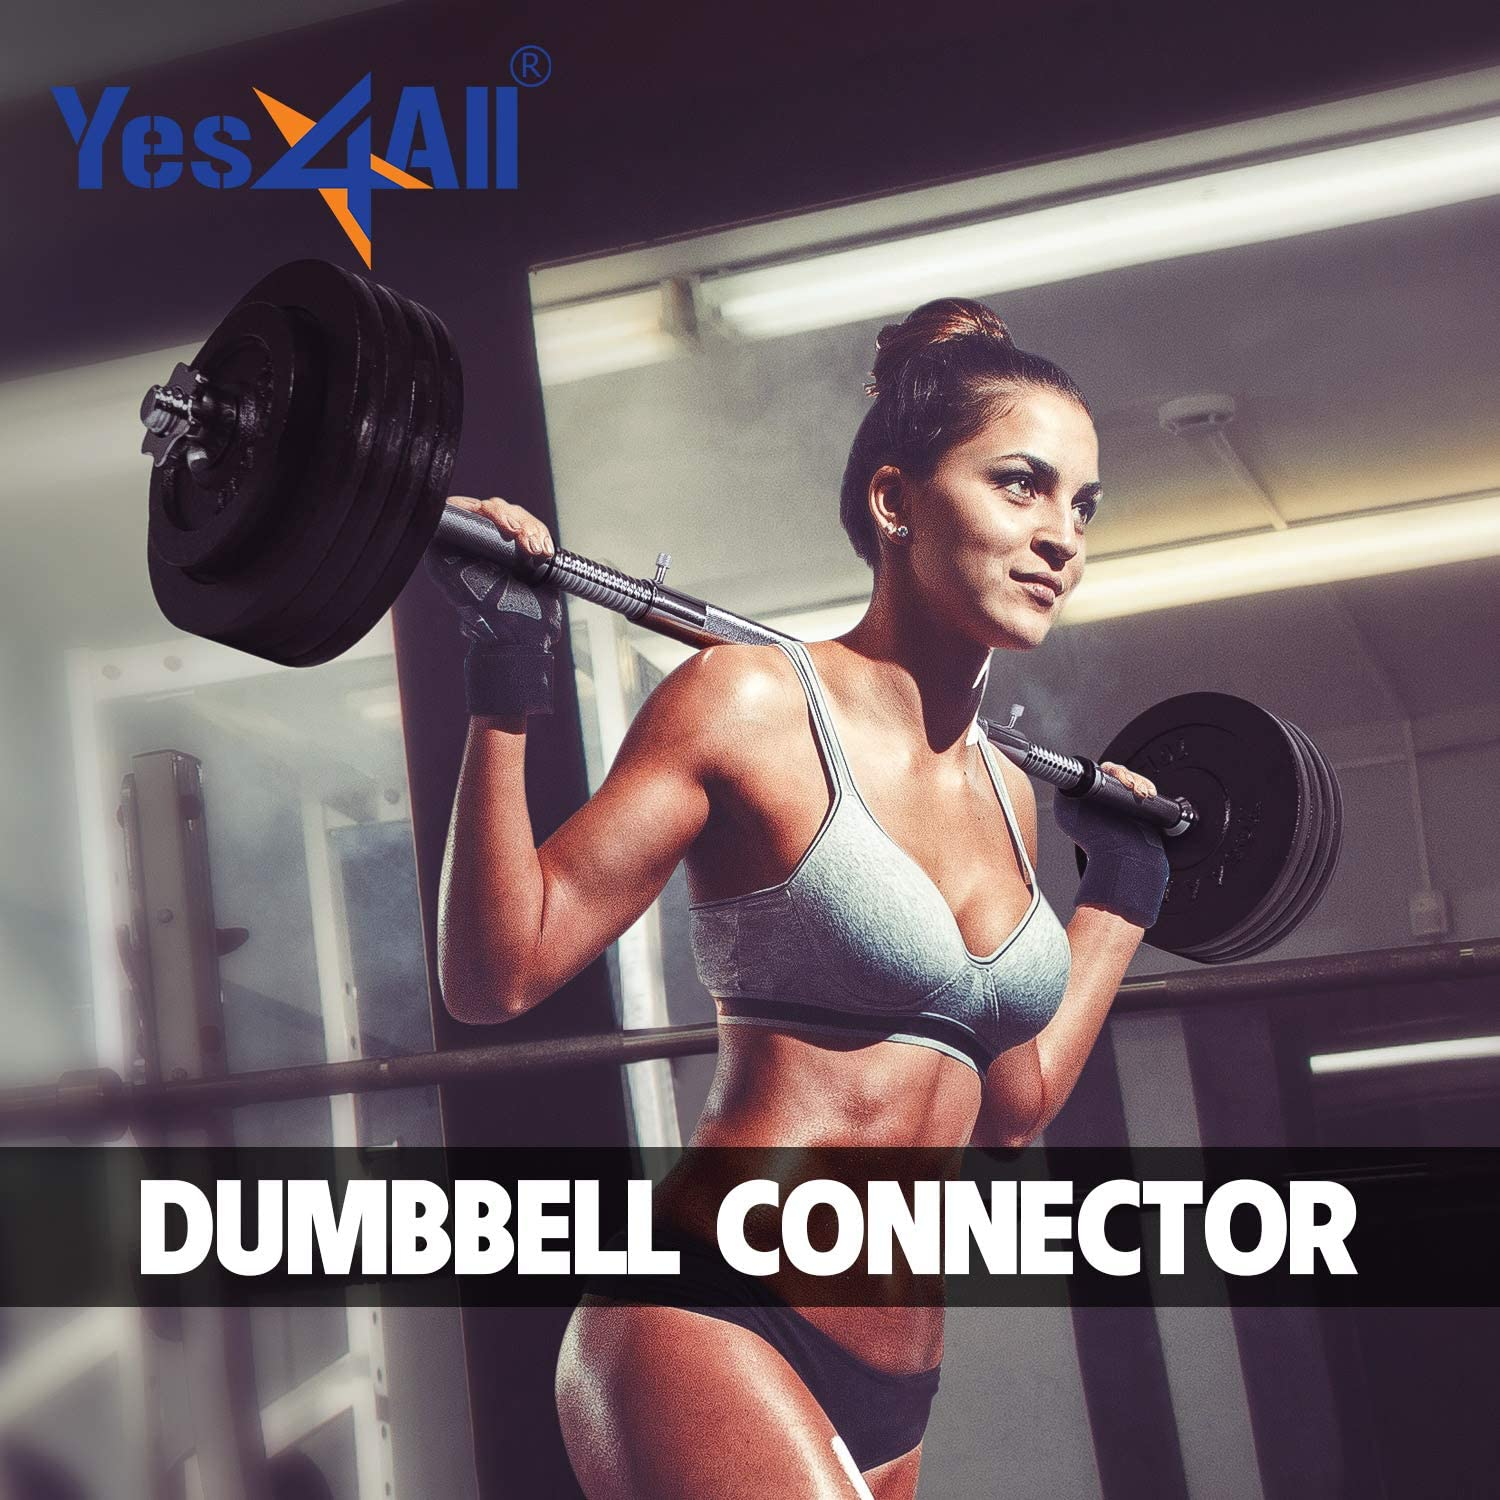 """Yes4All Adjustable Dumbbells 40, 50, 52.5, 60, 105 to 200 lbs with Connector Options (F. Chrome Connector 1, 15"""") : Sports & Outdoors"""